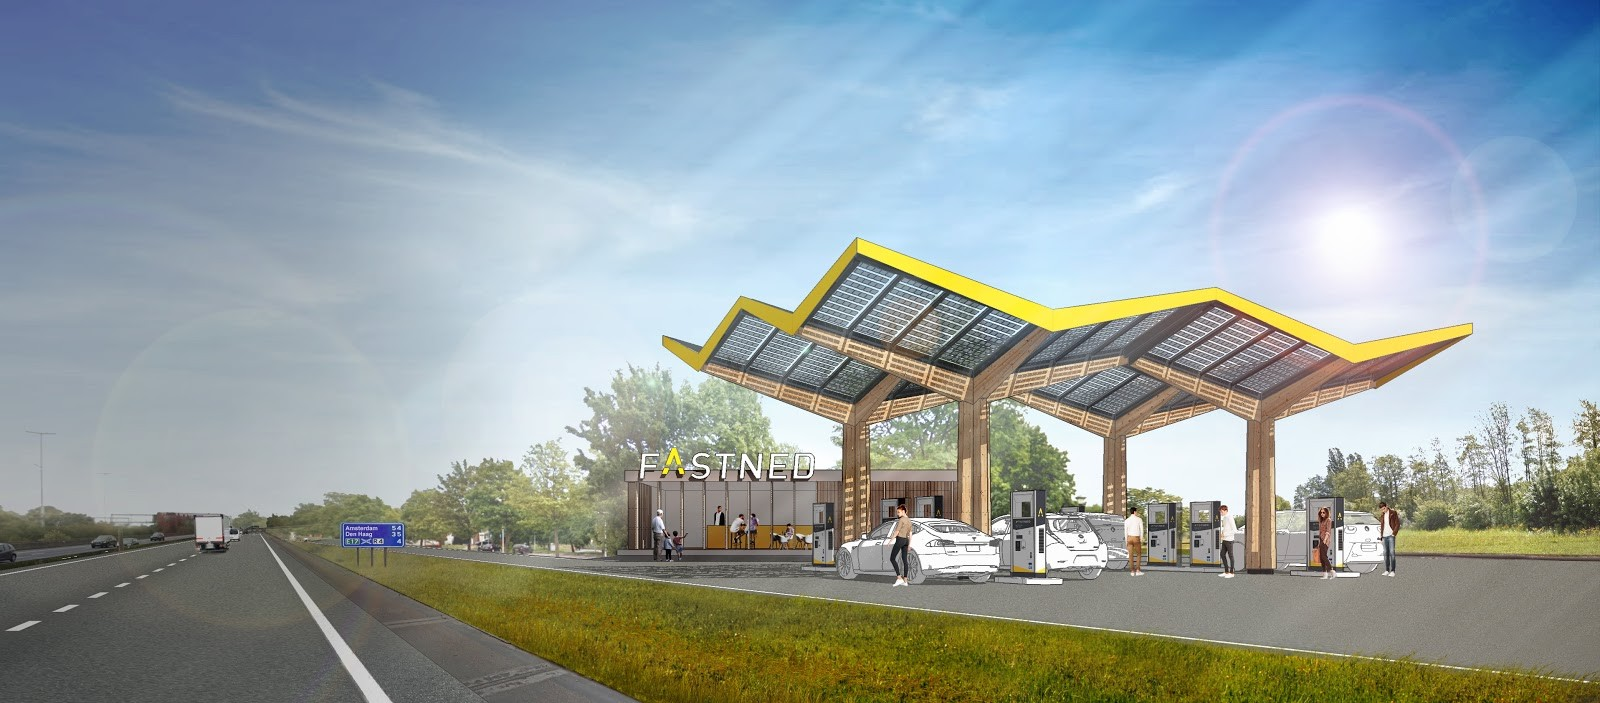 ⚡Fastned-Offensive An M-Vs Autobahnen!⚡